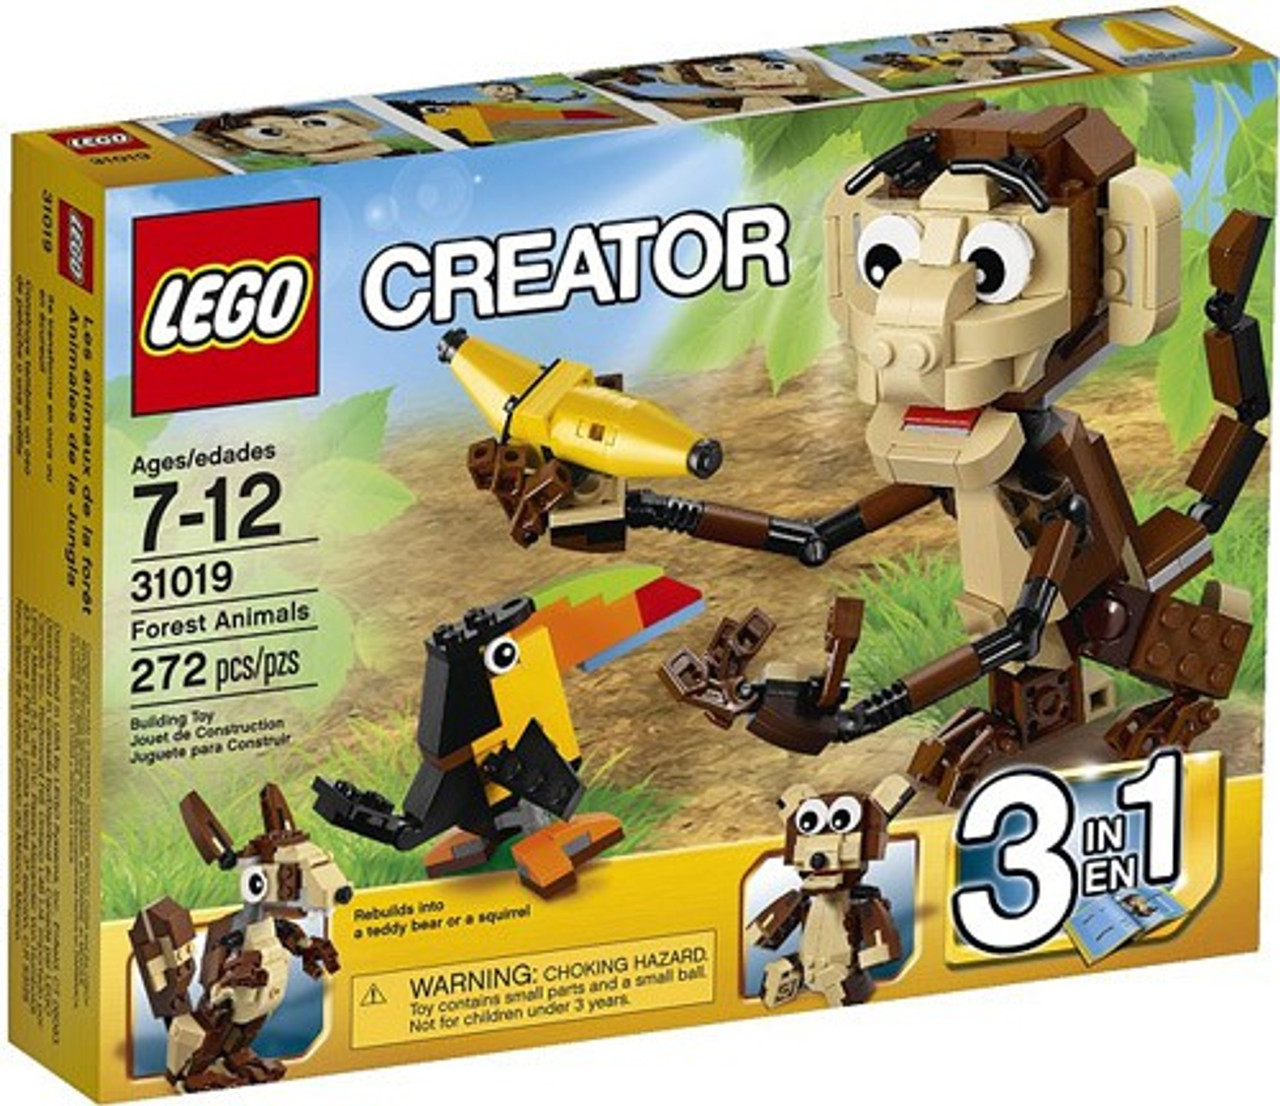 LEGO Creator Forest Animals Set #31019